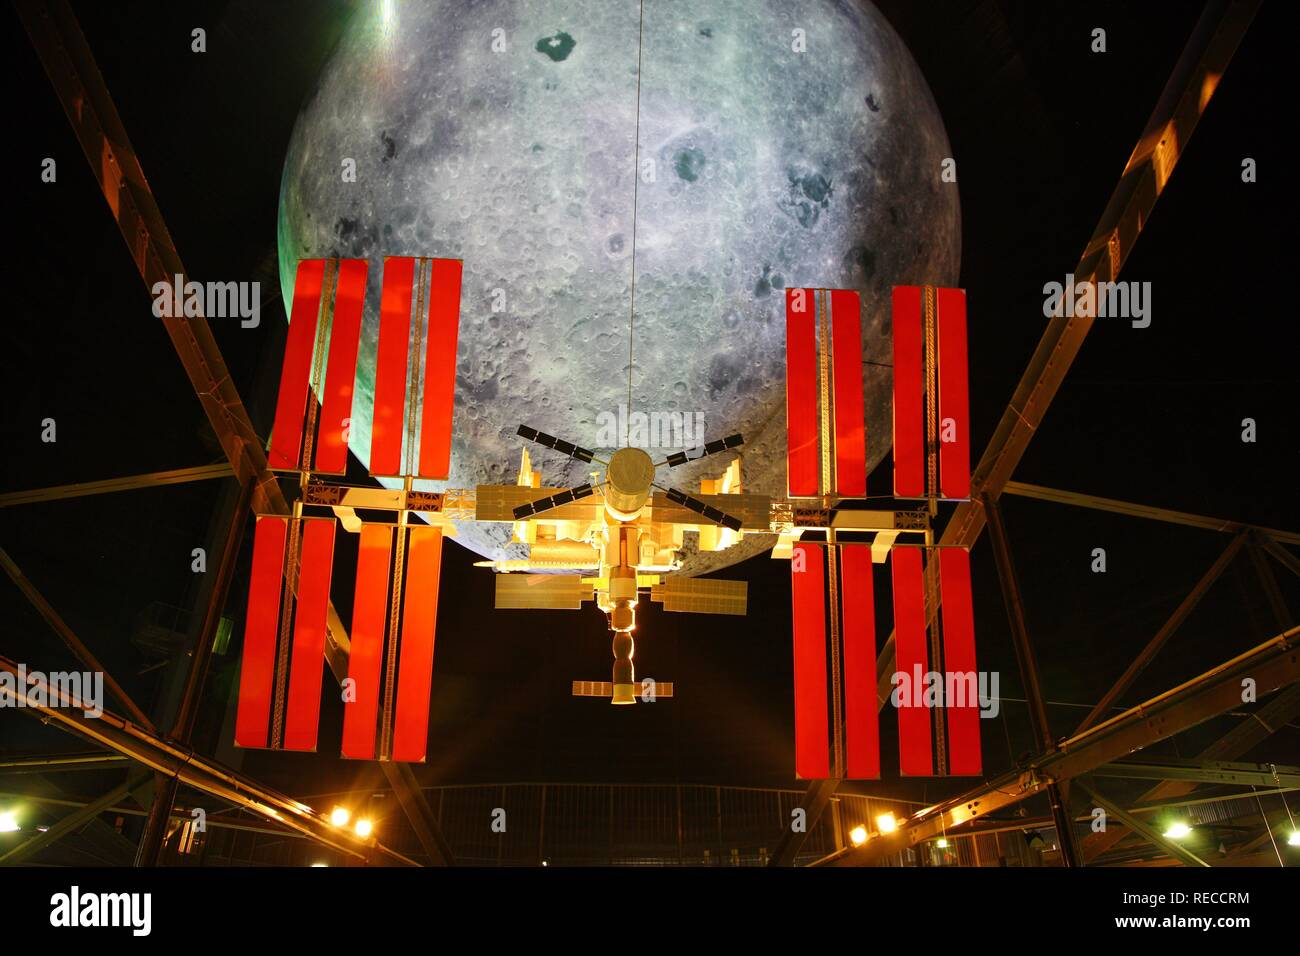 Model of the ISS, International Space Station, and the Moon, Out of this World – Wonders of the Solar System Stock Photo